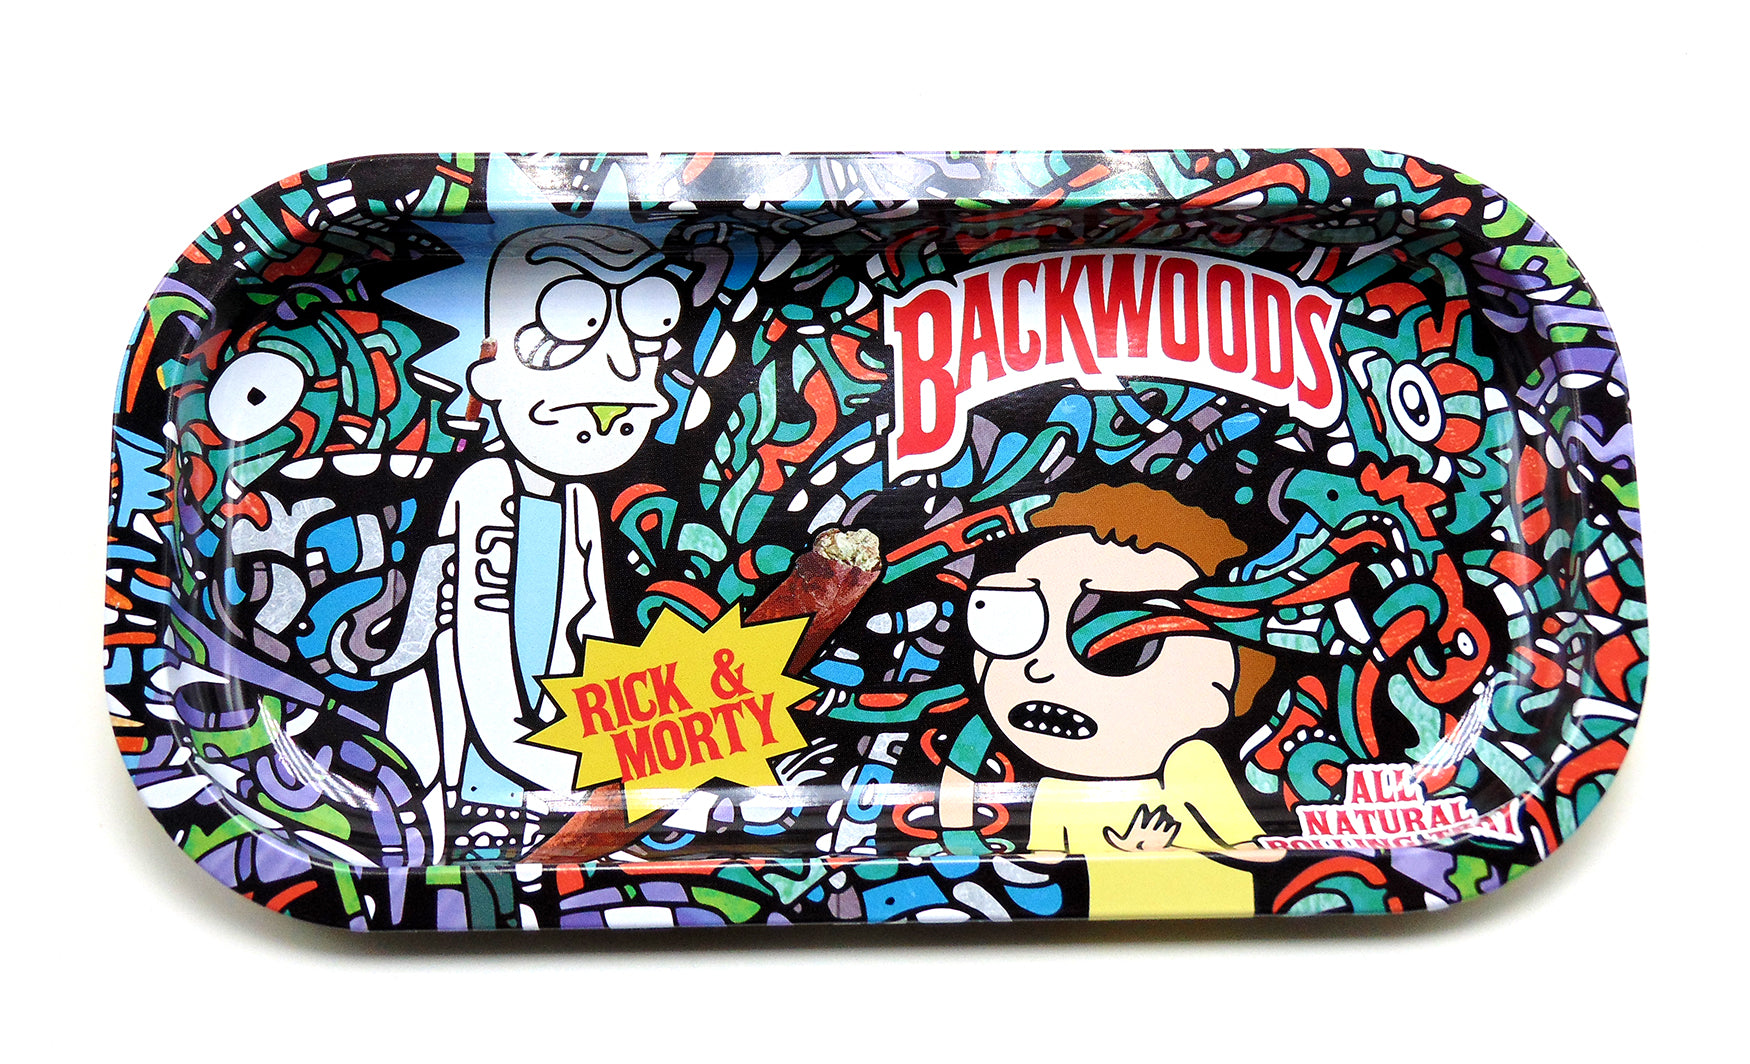 online retailer 9fc88 7dc86 Rick and Morty Backwoods Rolling Tray